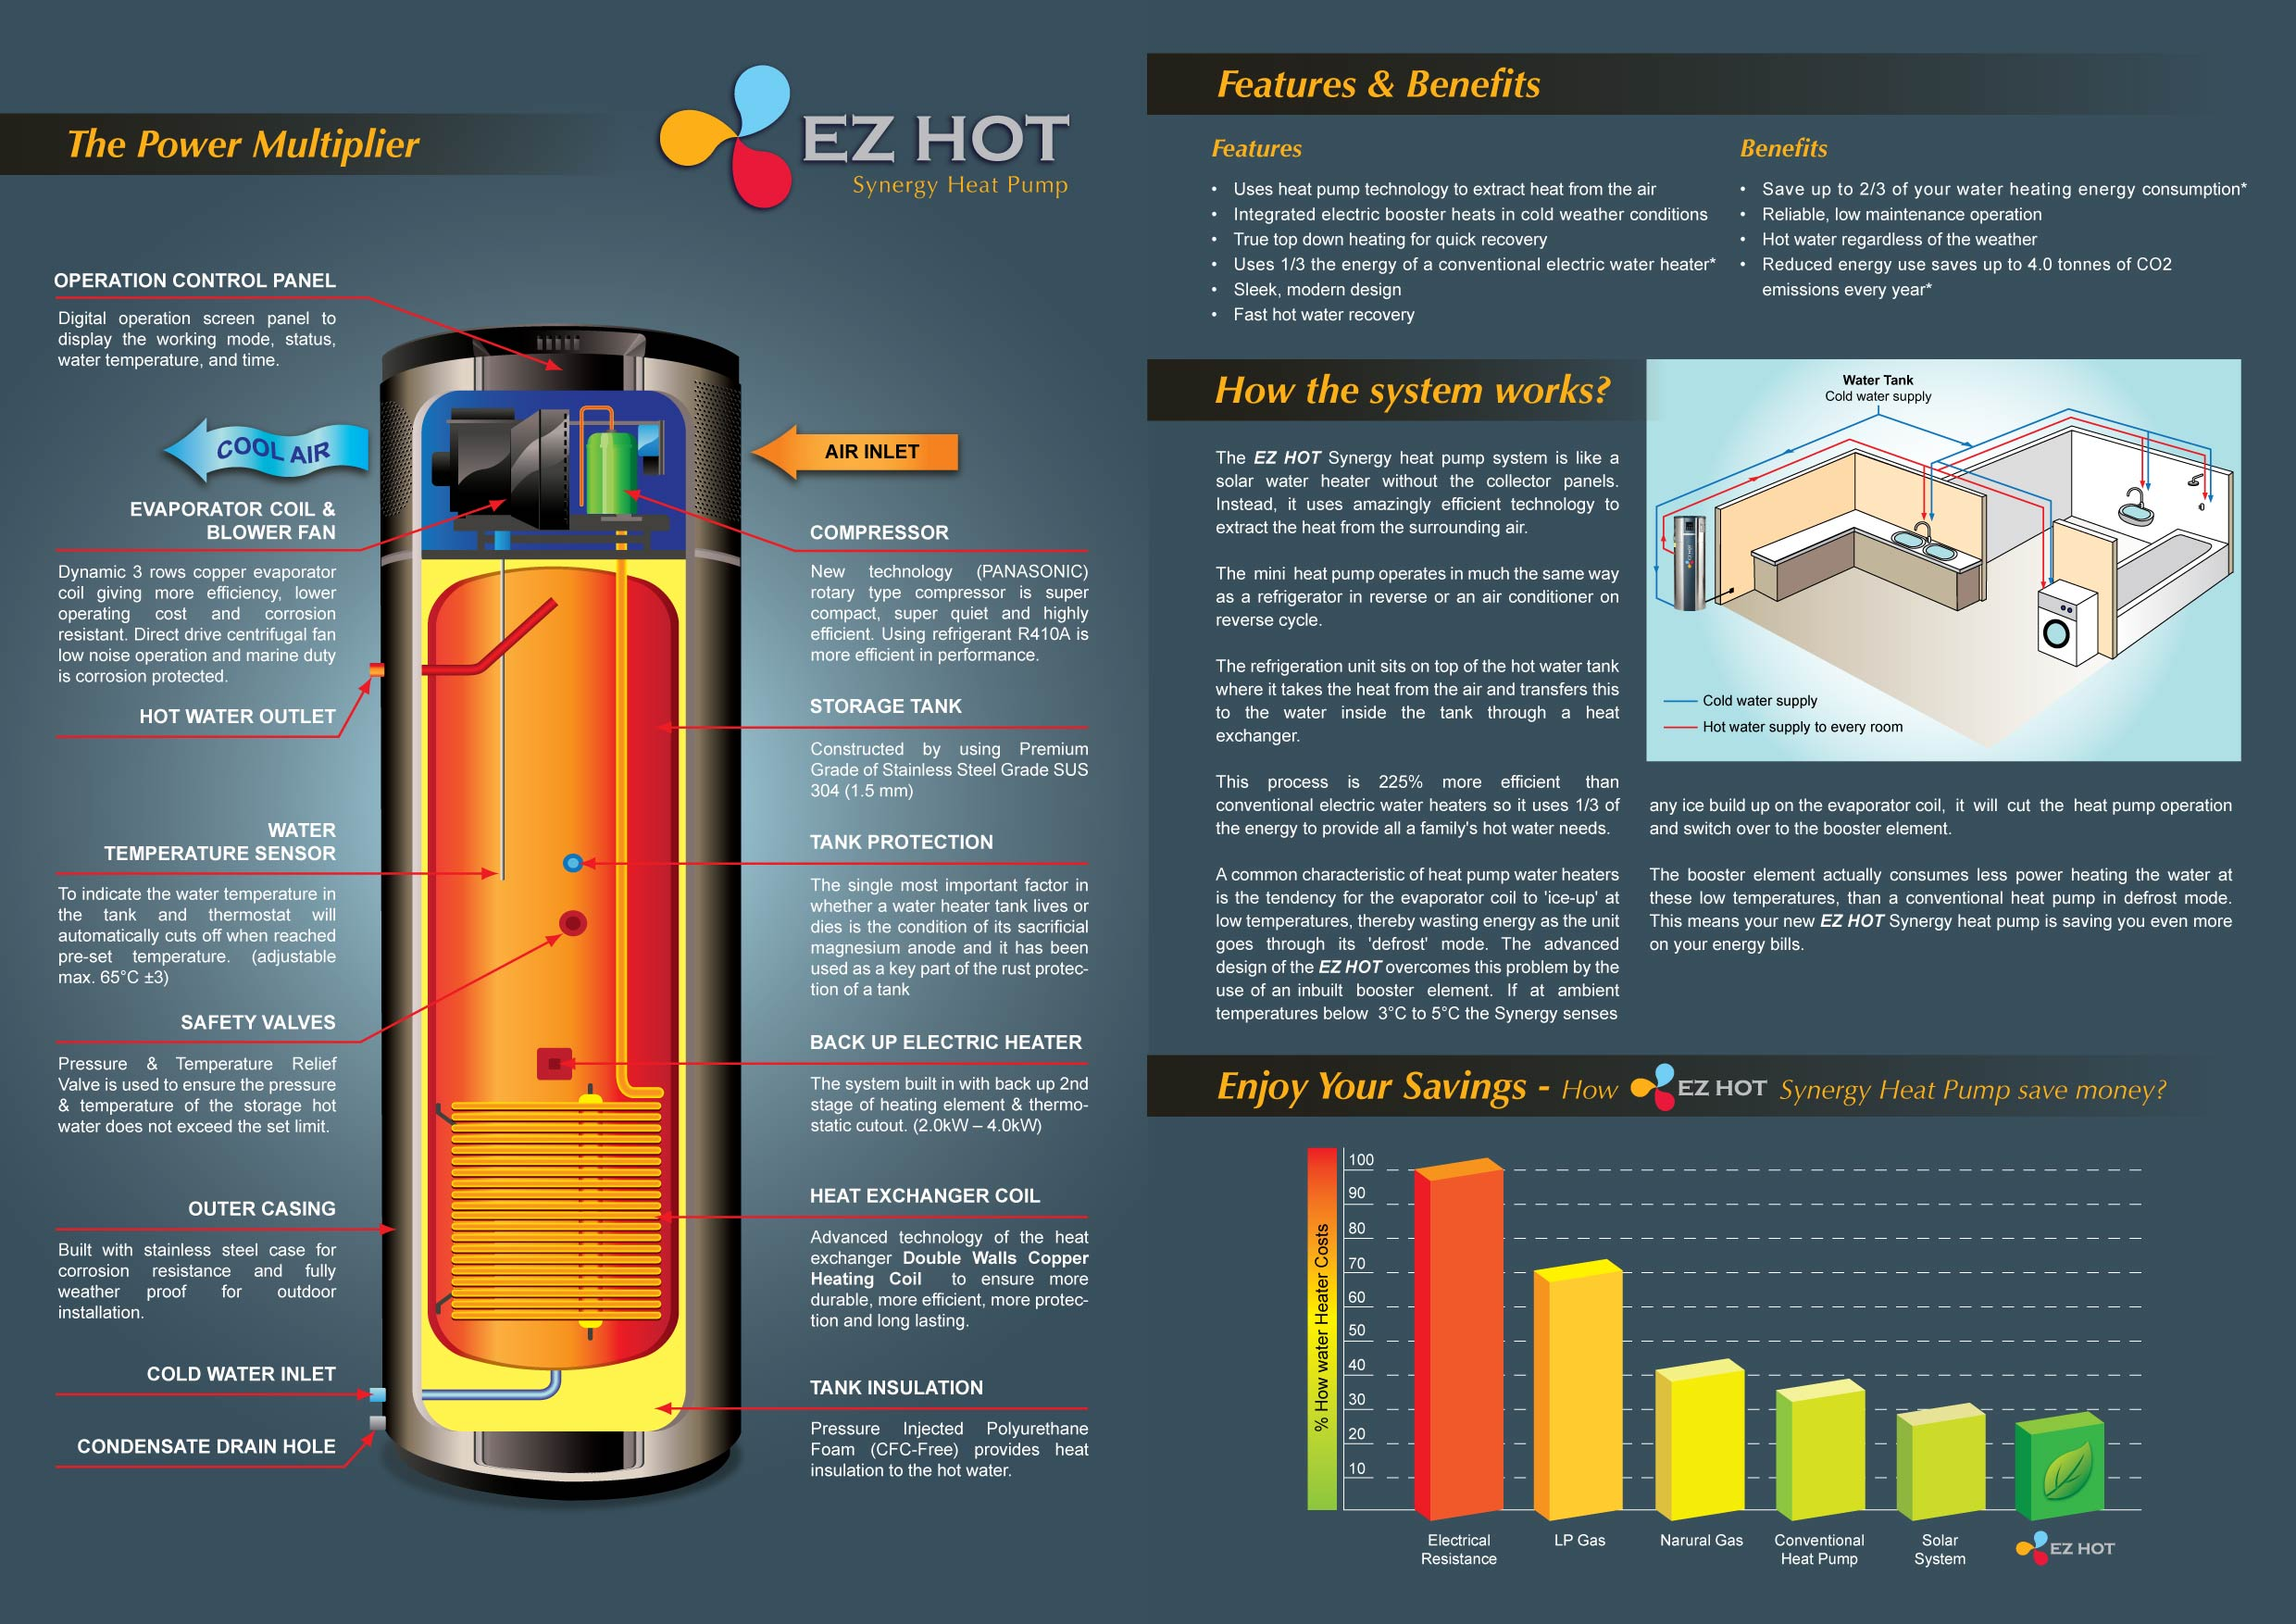 Ez Hot Synergy Heat Pump